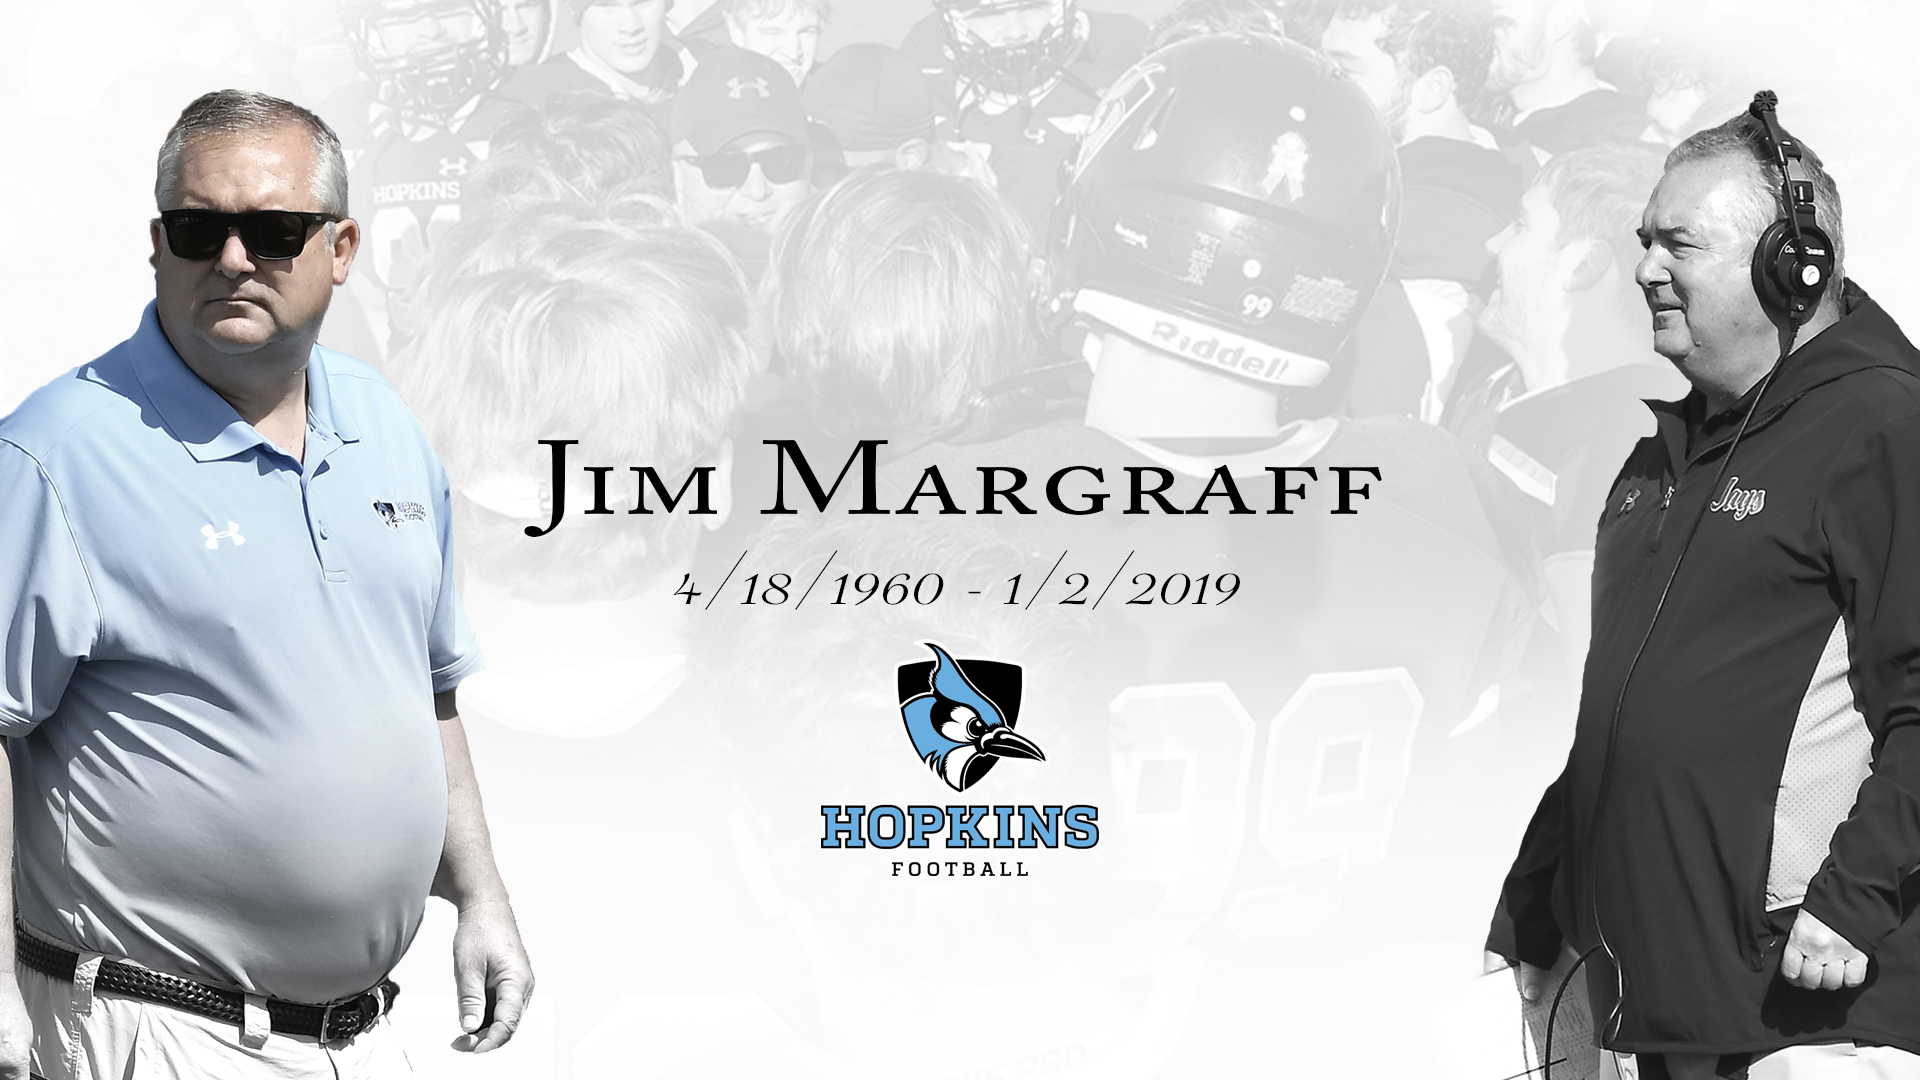 Jim Margraff was the winningest football coach in Johns Hopkins and Centennial Conference history.